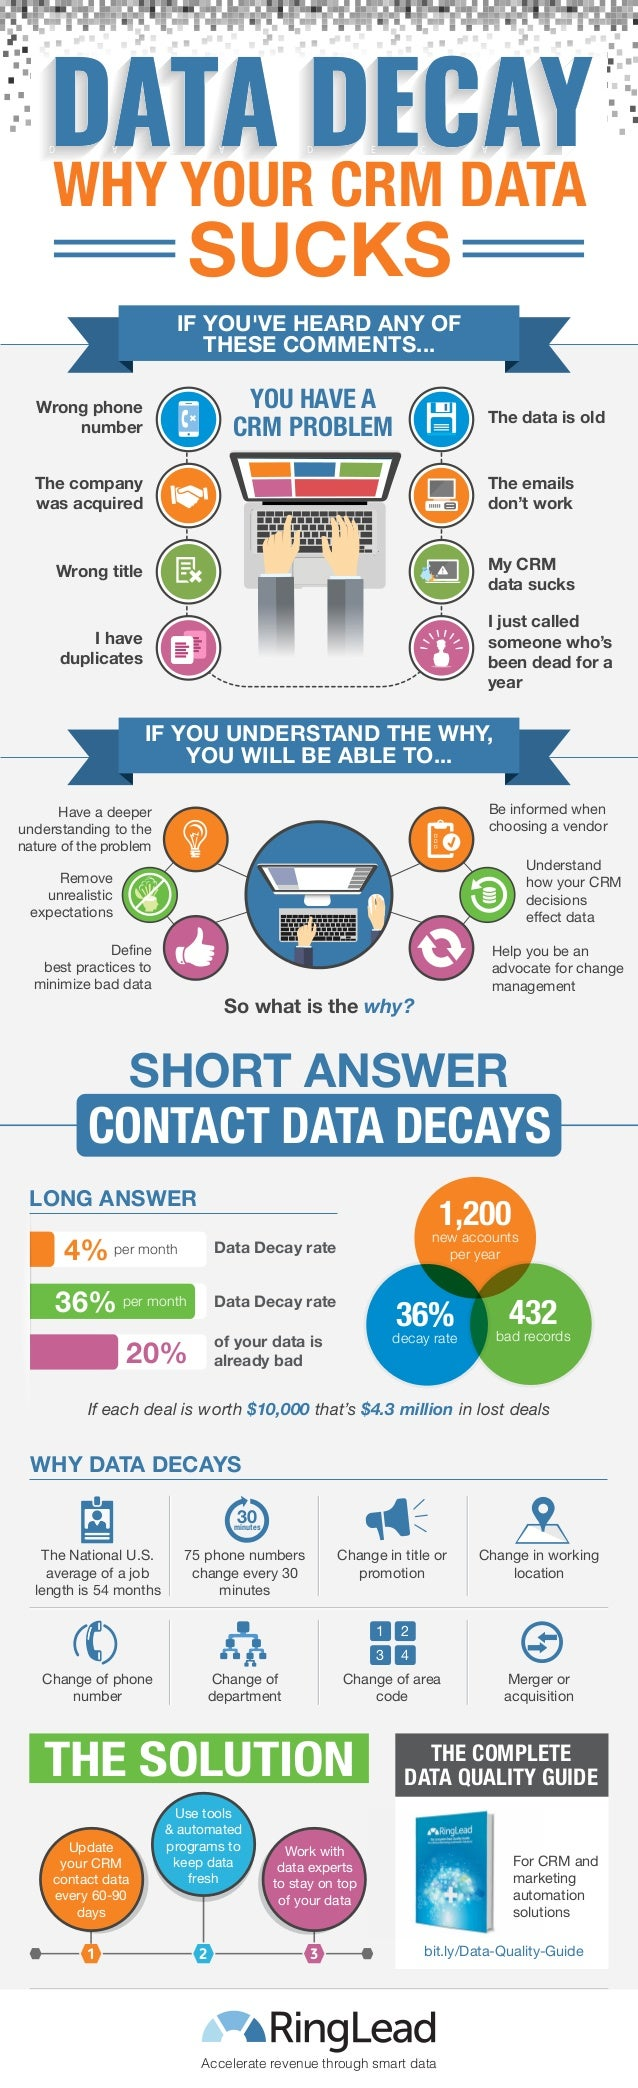 CONTACT DATA DECAYS YOU HAVE A CRM PROBLEM Wrong phone number The company was acquired Wrong title I have duplicates The d...